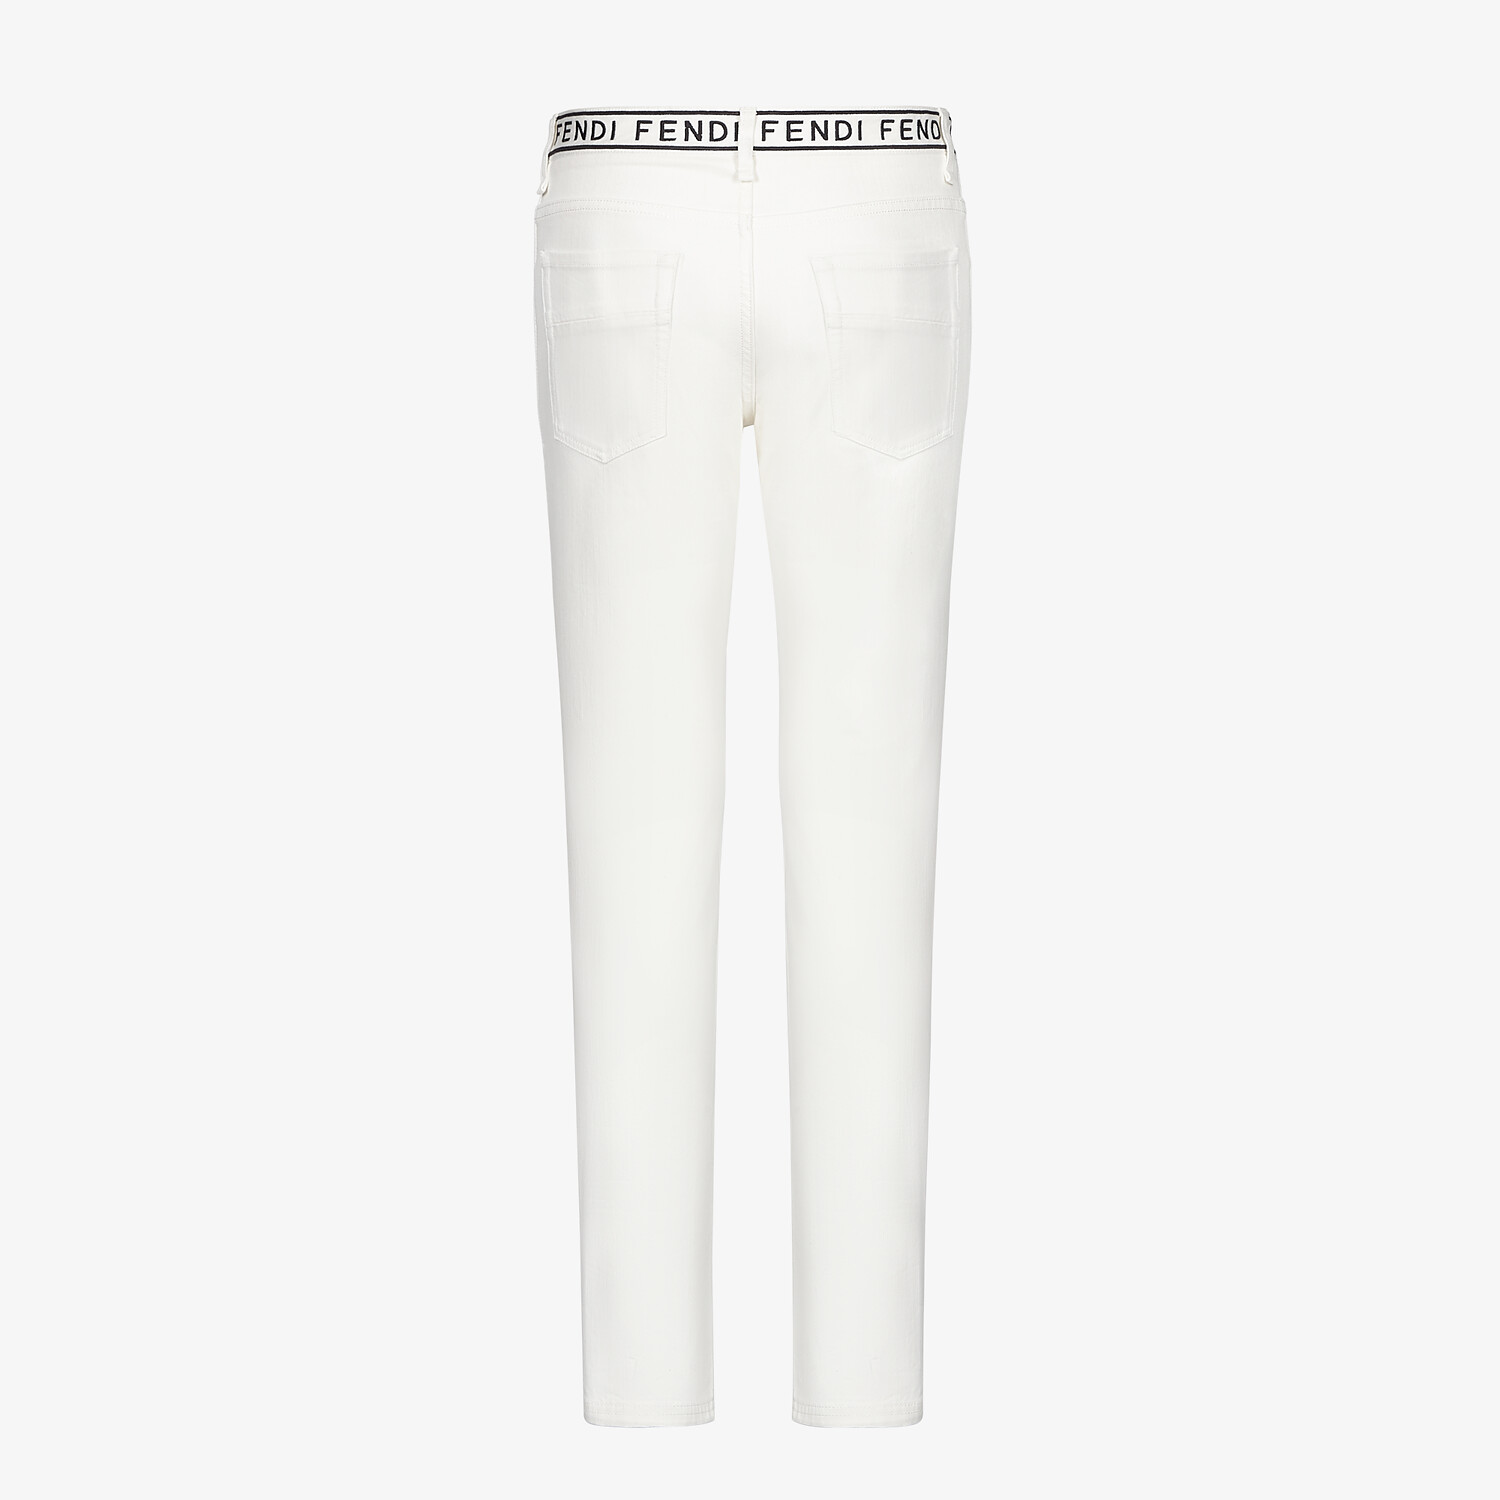 FENDI DENIM - White denim jeans - view 2 detail